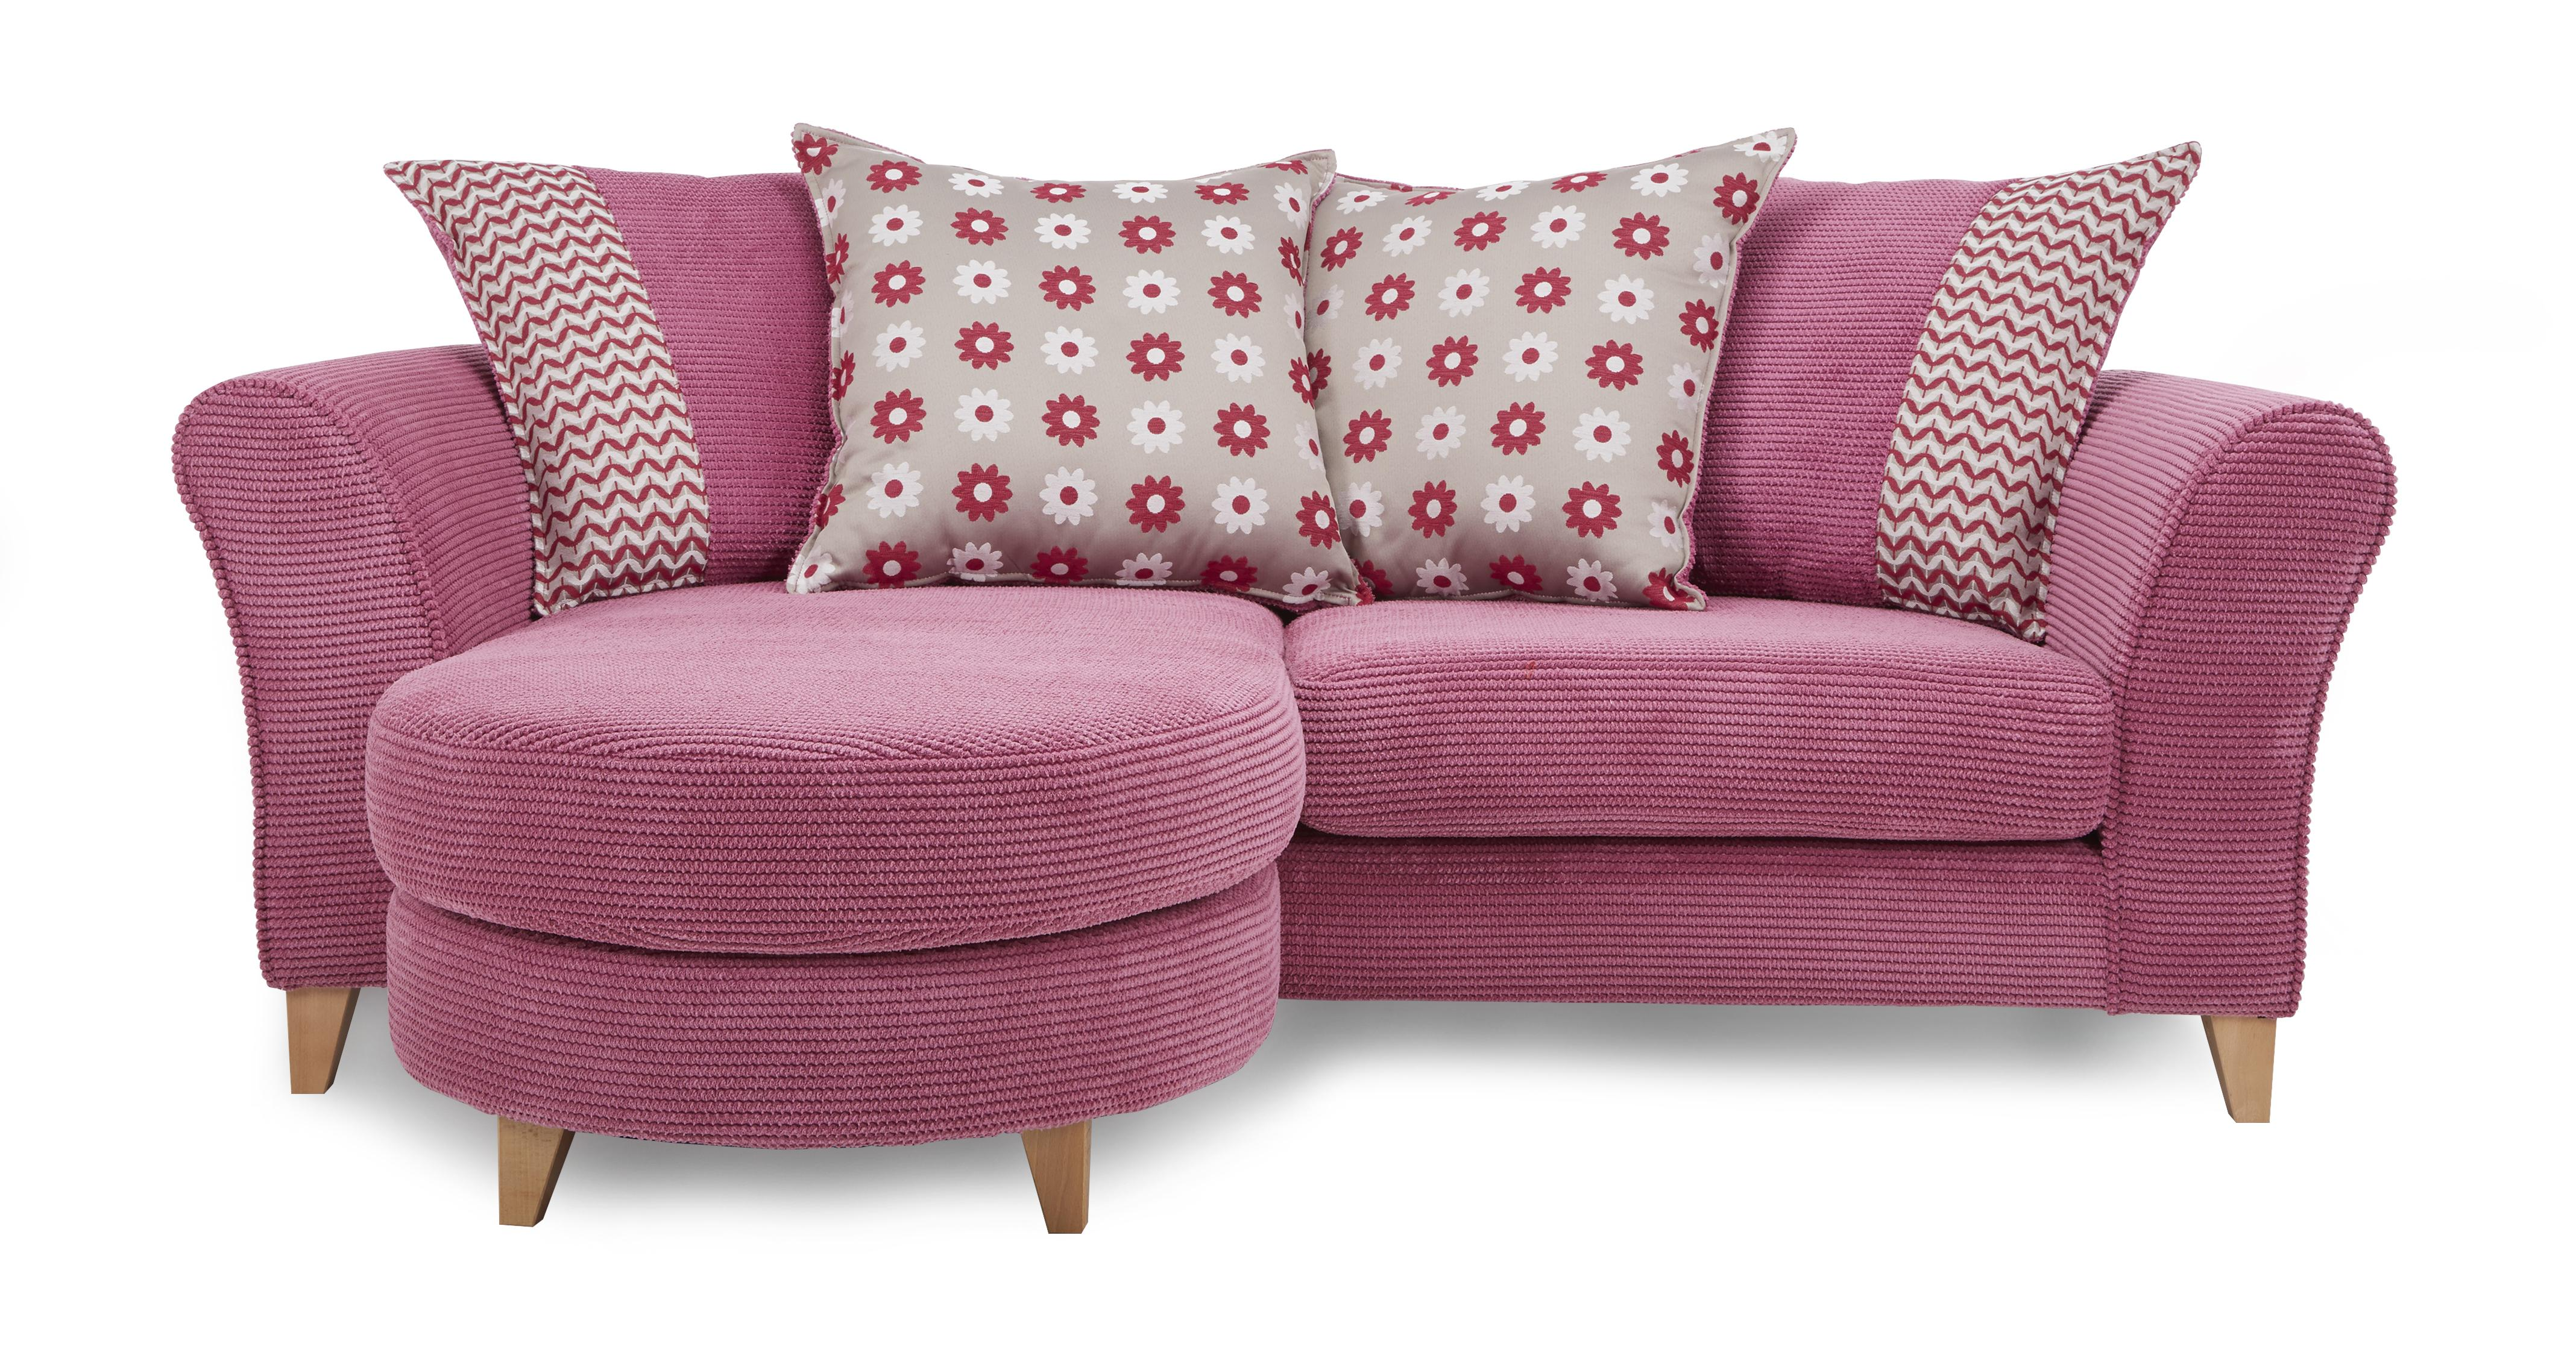 pink sofa furniture paletten bauen anleitung pdf ottoman that turns into bed convert to